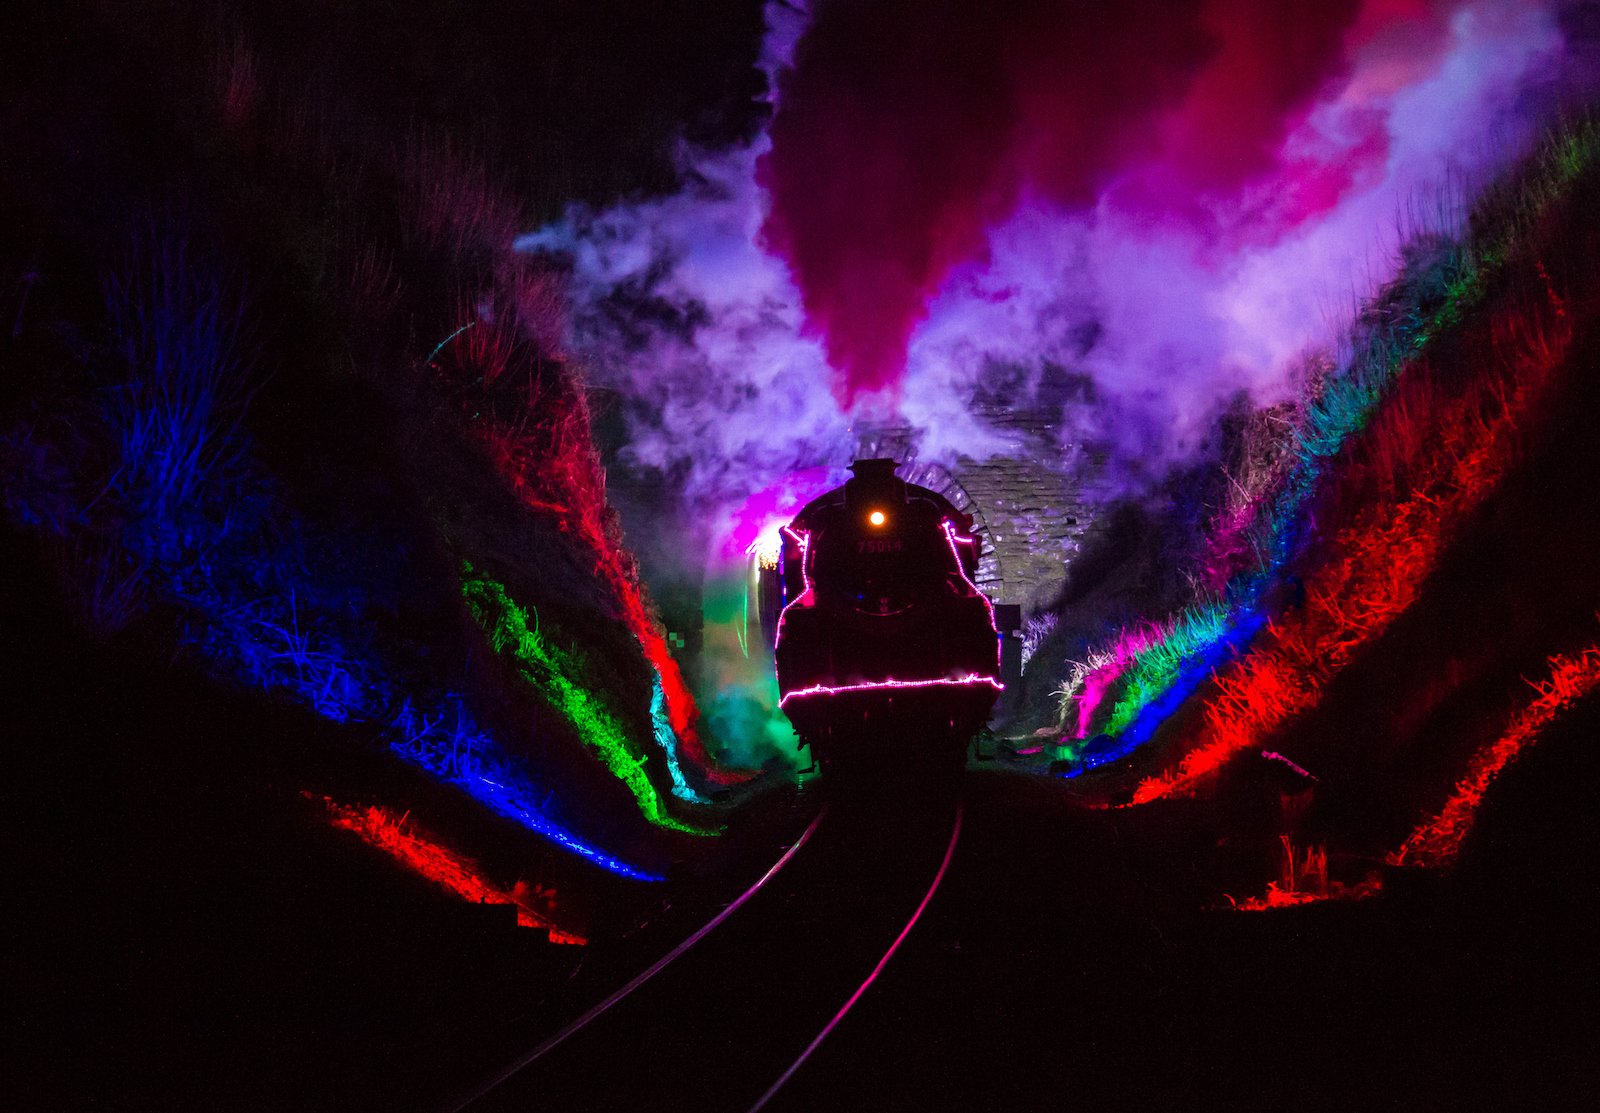 Dartmouth Train of Lights going through Greenway tunnel